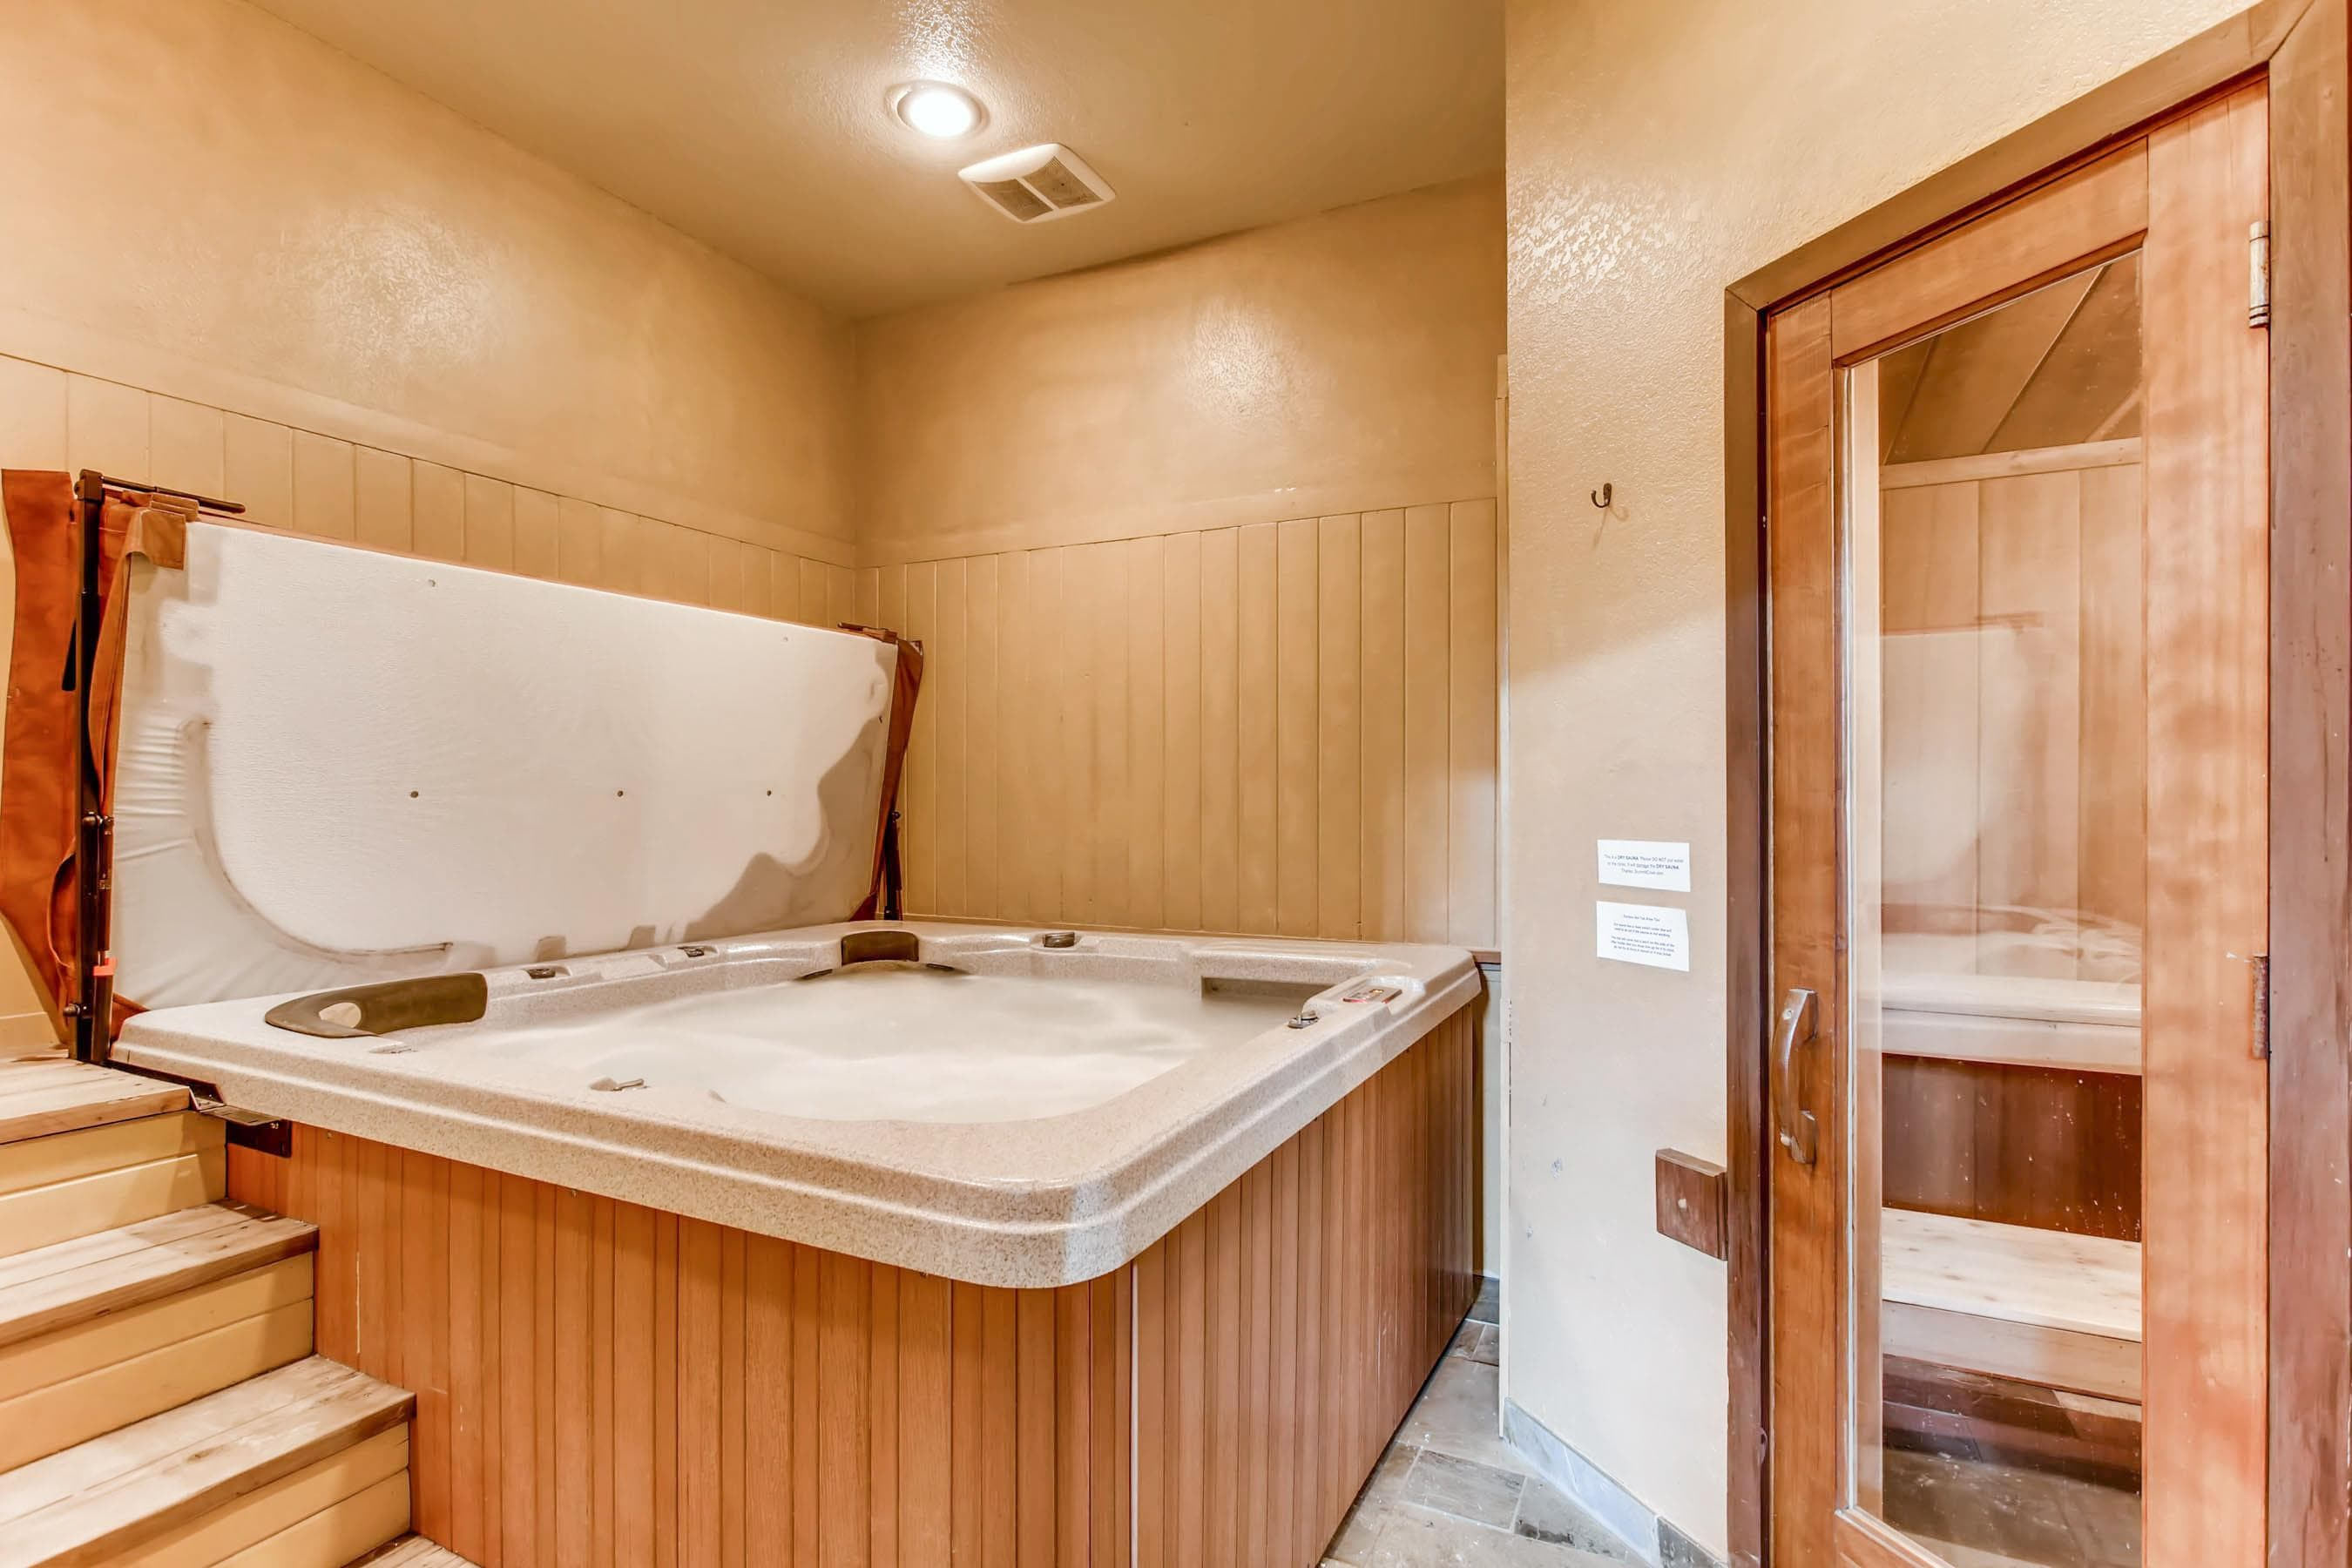 Relax in the private spa room with a 6-person hot tub and a dry sauna.